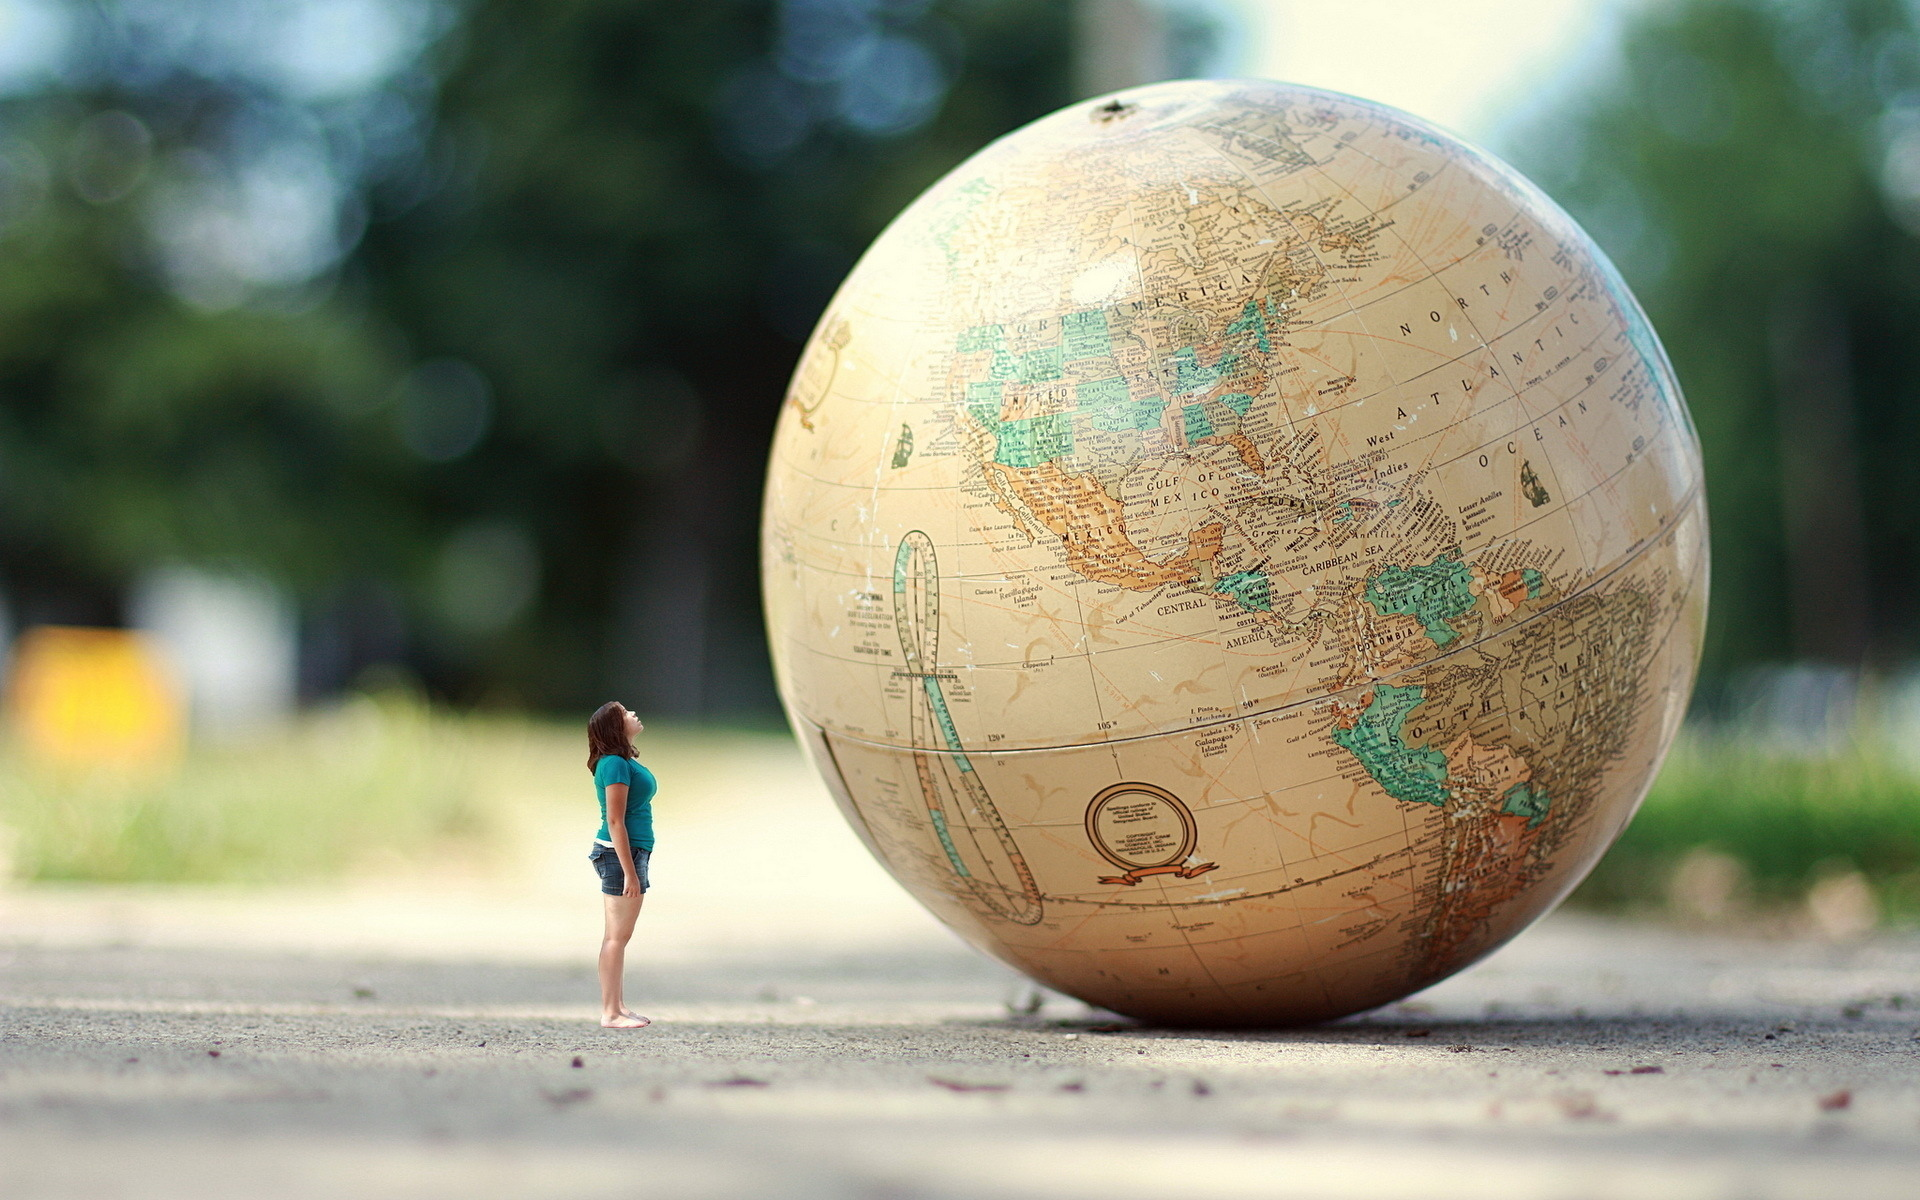 Manip Earth Globe Sphere Map Women Humor Mood Travel Situation Wallpaper